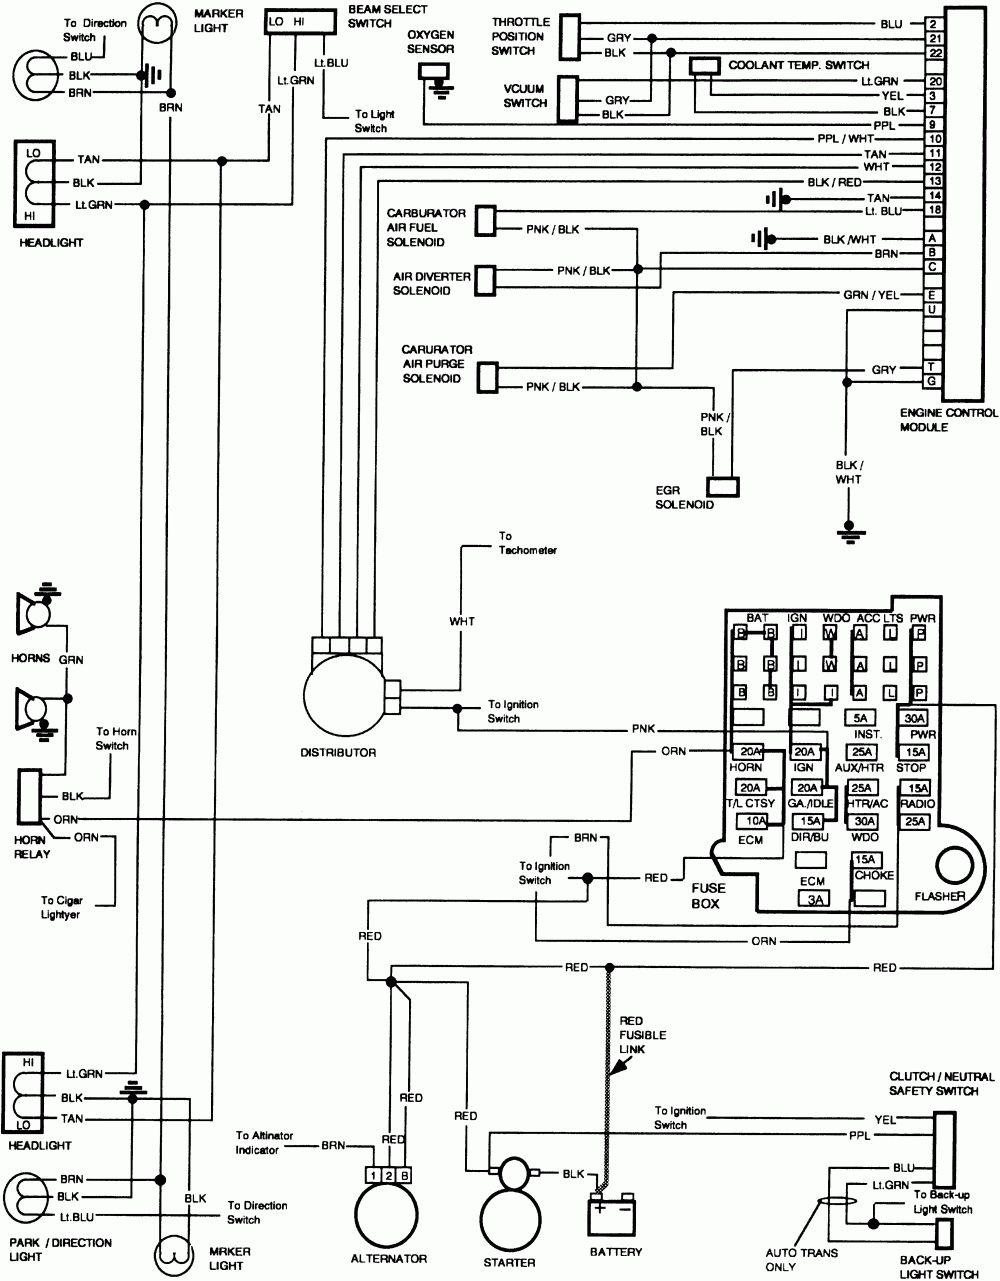 86 chevy truck wiring diagram repair guides wiring diagrams wiring diagrams  autozone in 1986 chevy truck wir… | 1985 chevy truck, 1986 chevy truck,  1984 chevy truck  pinterest